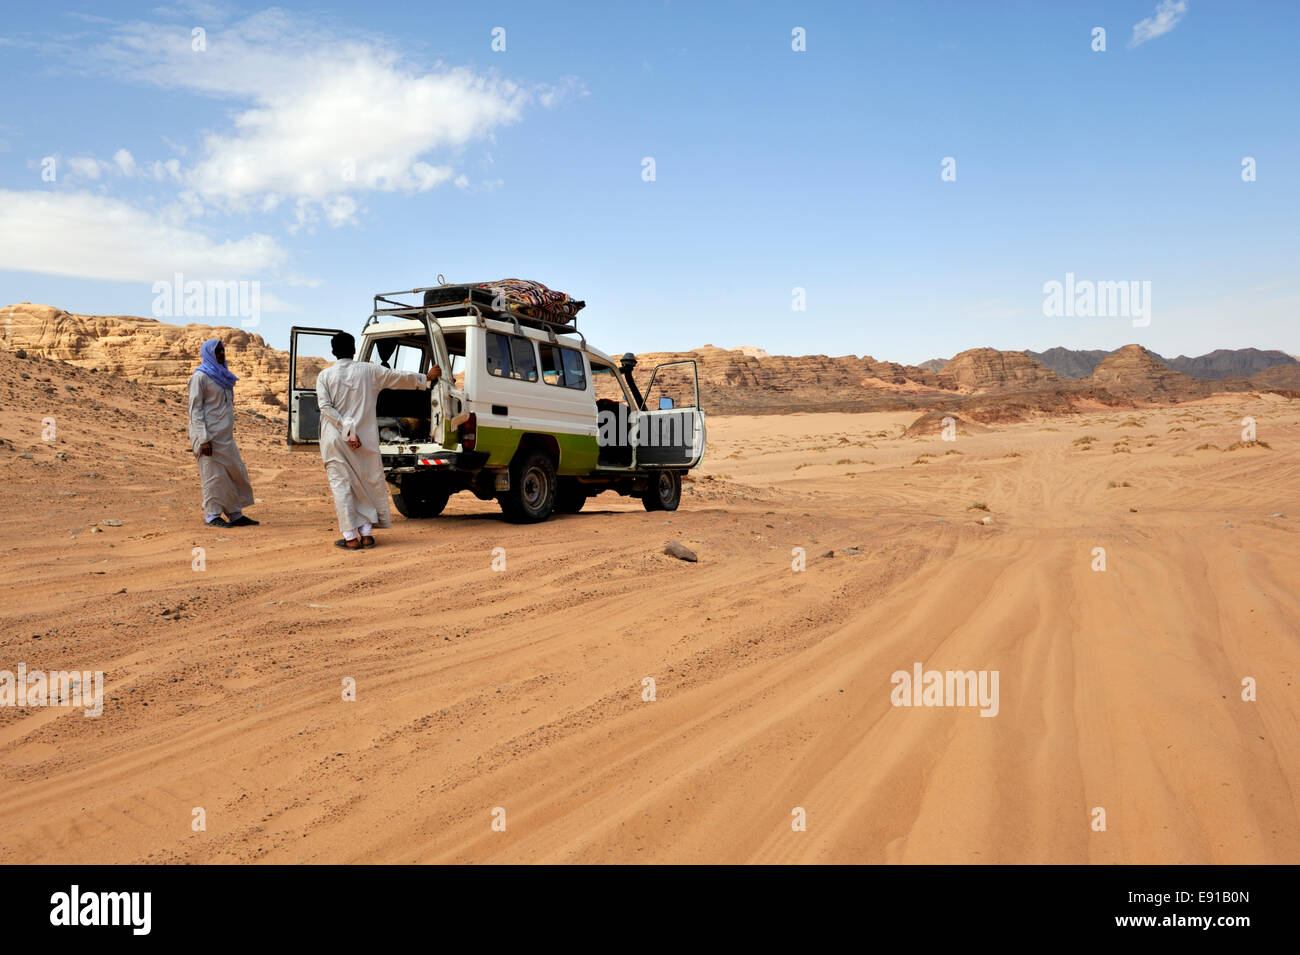 Twp Bedouin Arab men with 4 wheel drive car on off road track in south Sinai desert with doors open for cooling, Stock Photo